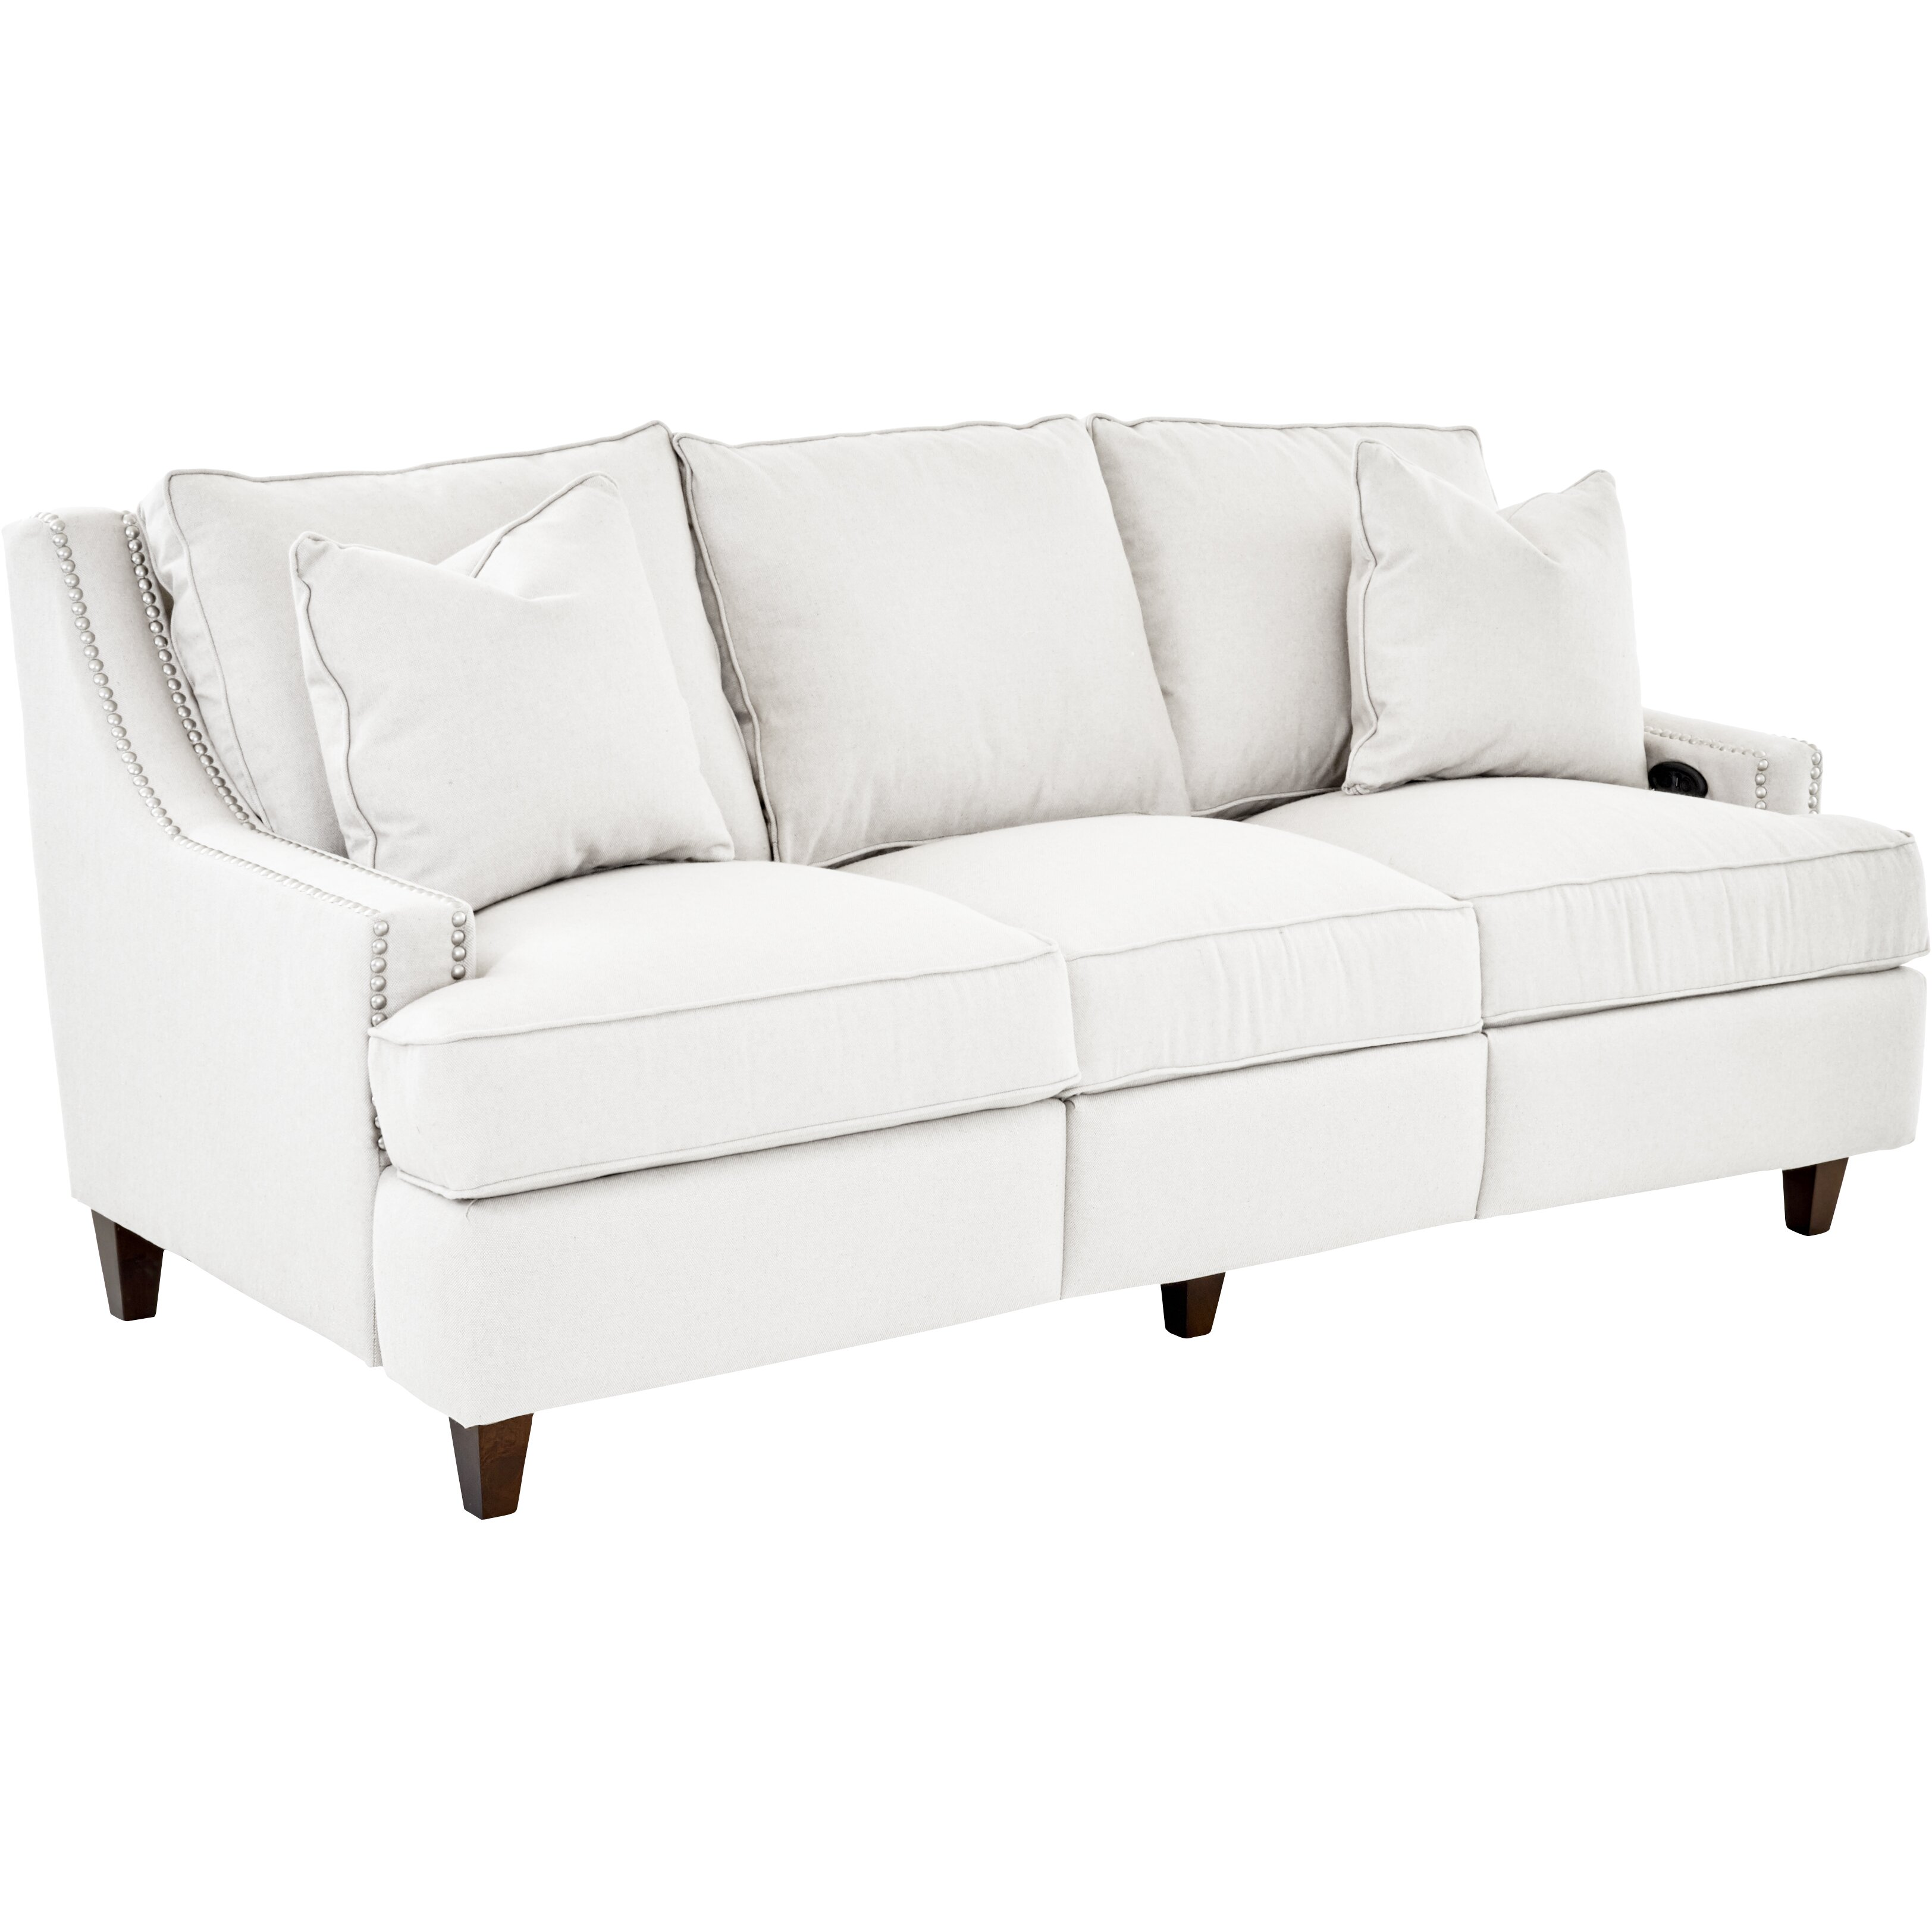 Wayfair Custom Upholstery Tricia Power Hybrid Reclining Sofa Amp Reviews Wayfair Ca